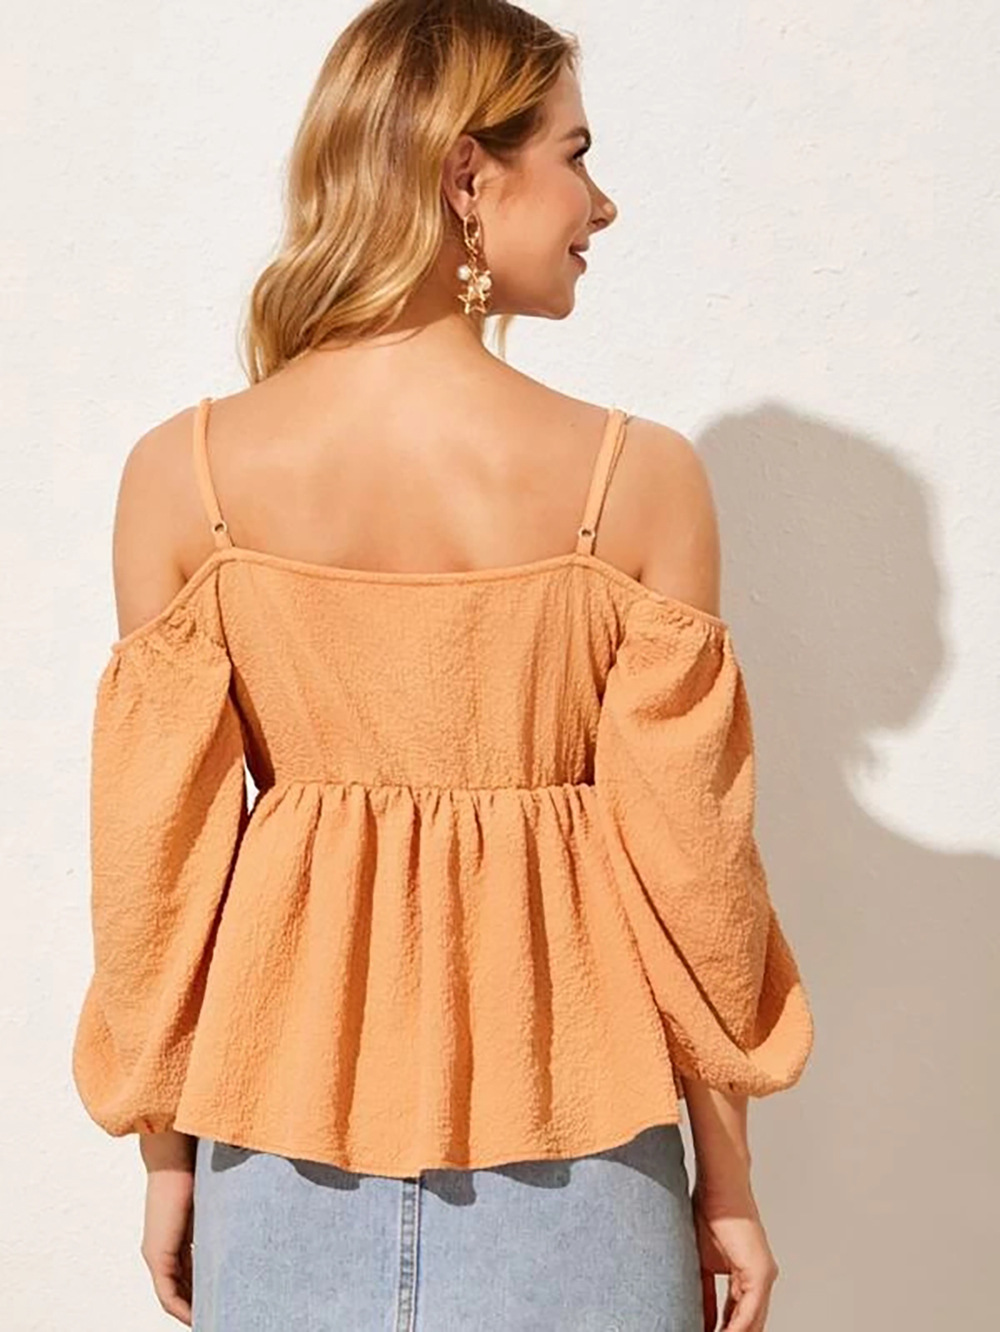 summer new style one-shoulder top blouse shirt off-shoulder strap pleated shirt NSDF401